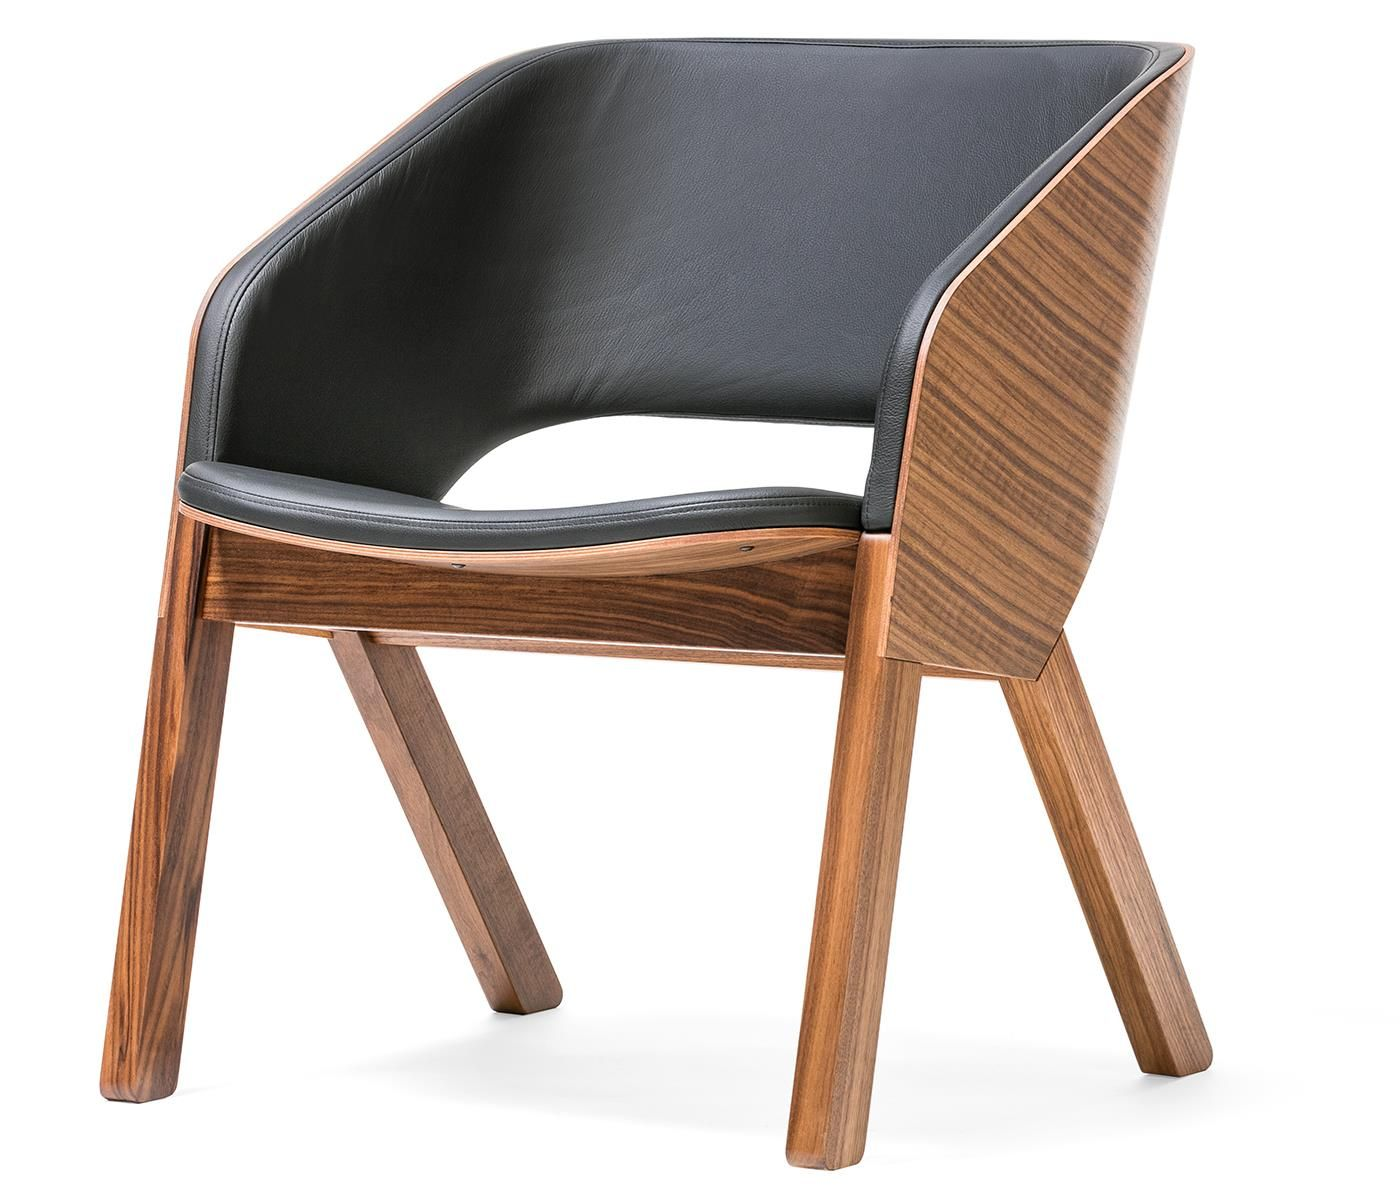 Merano Lounge Sessel Merano Lounge Armchair Ton A S Hancrafted For Generations сайты